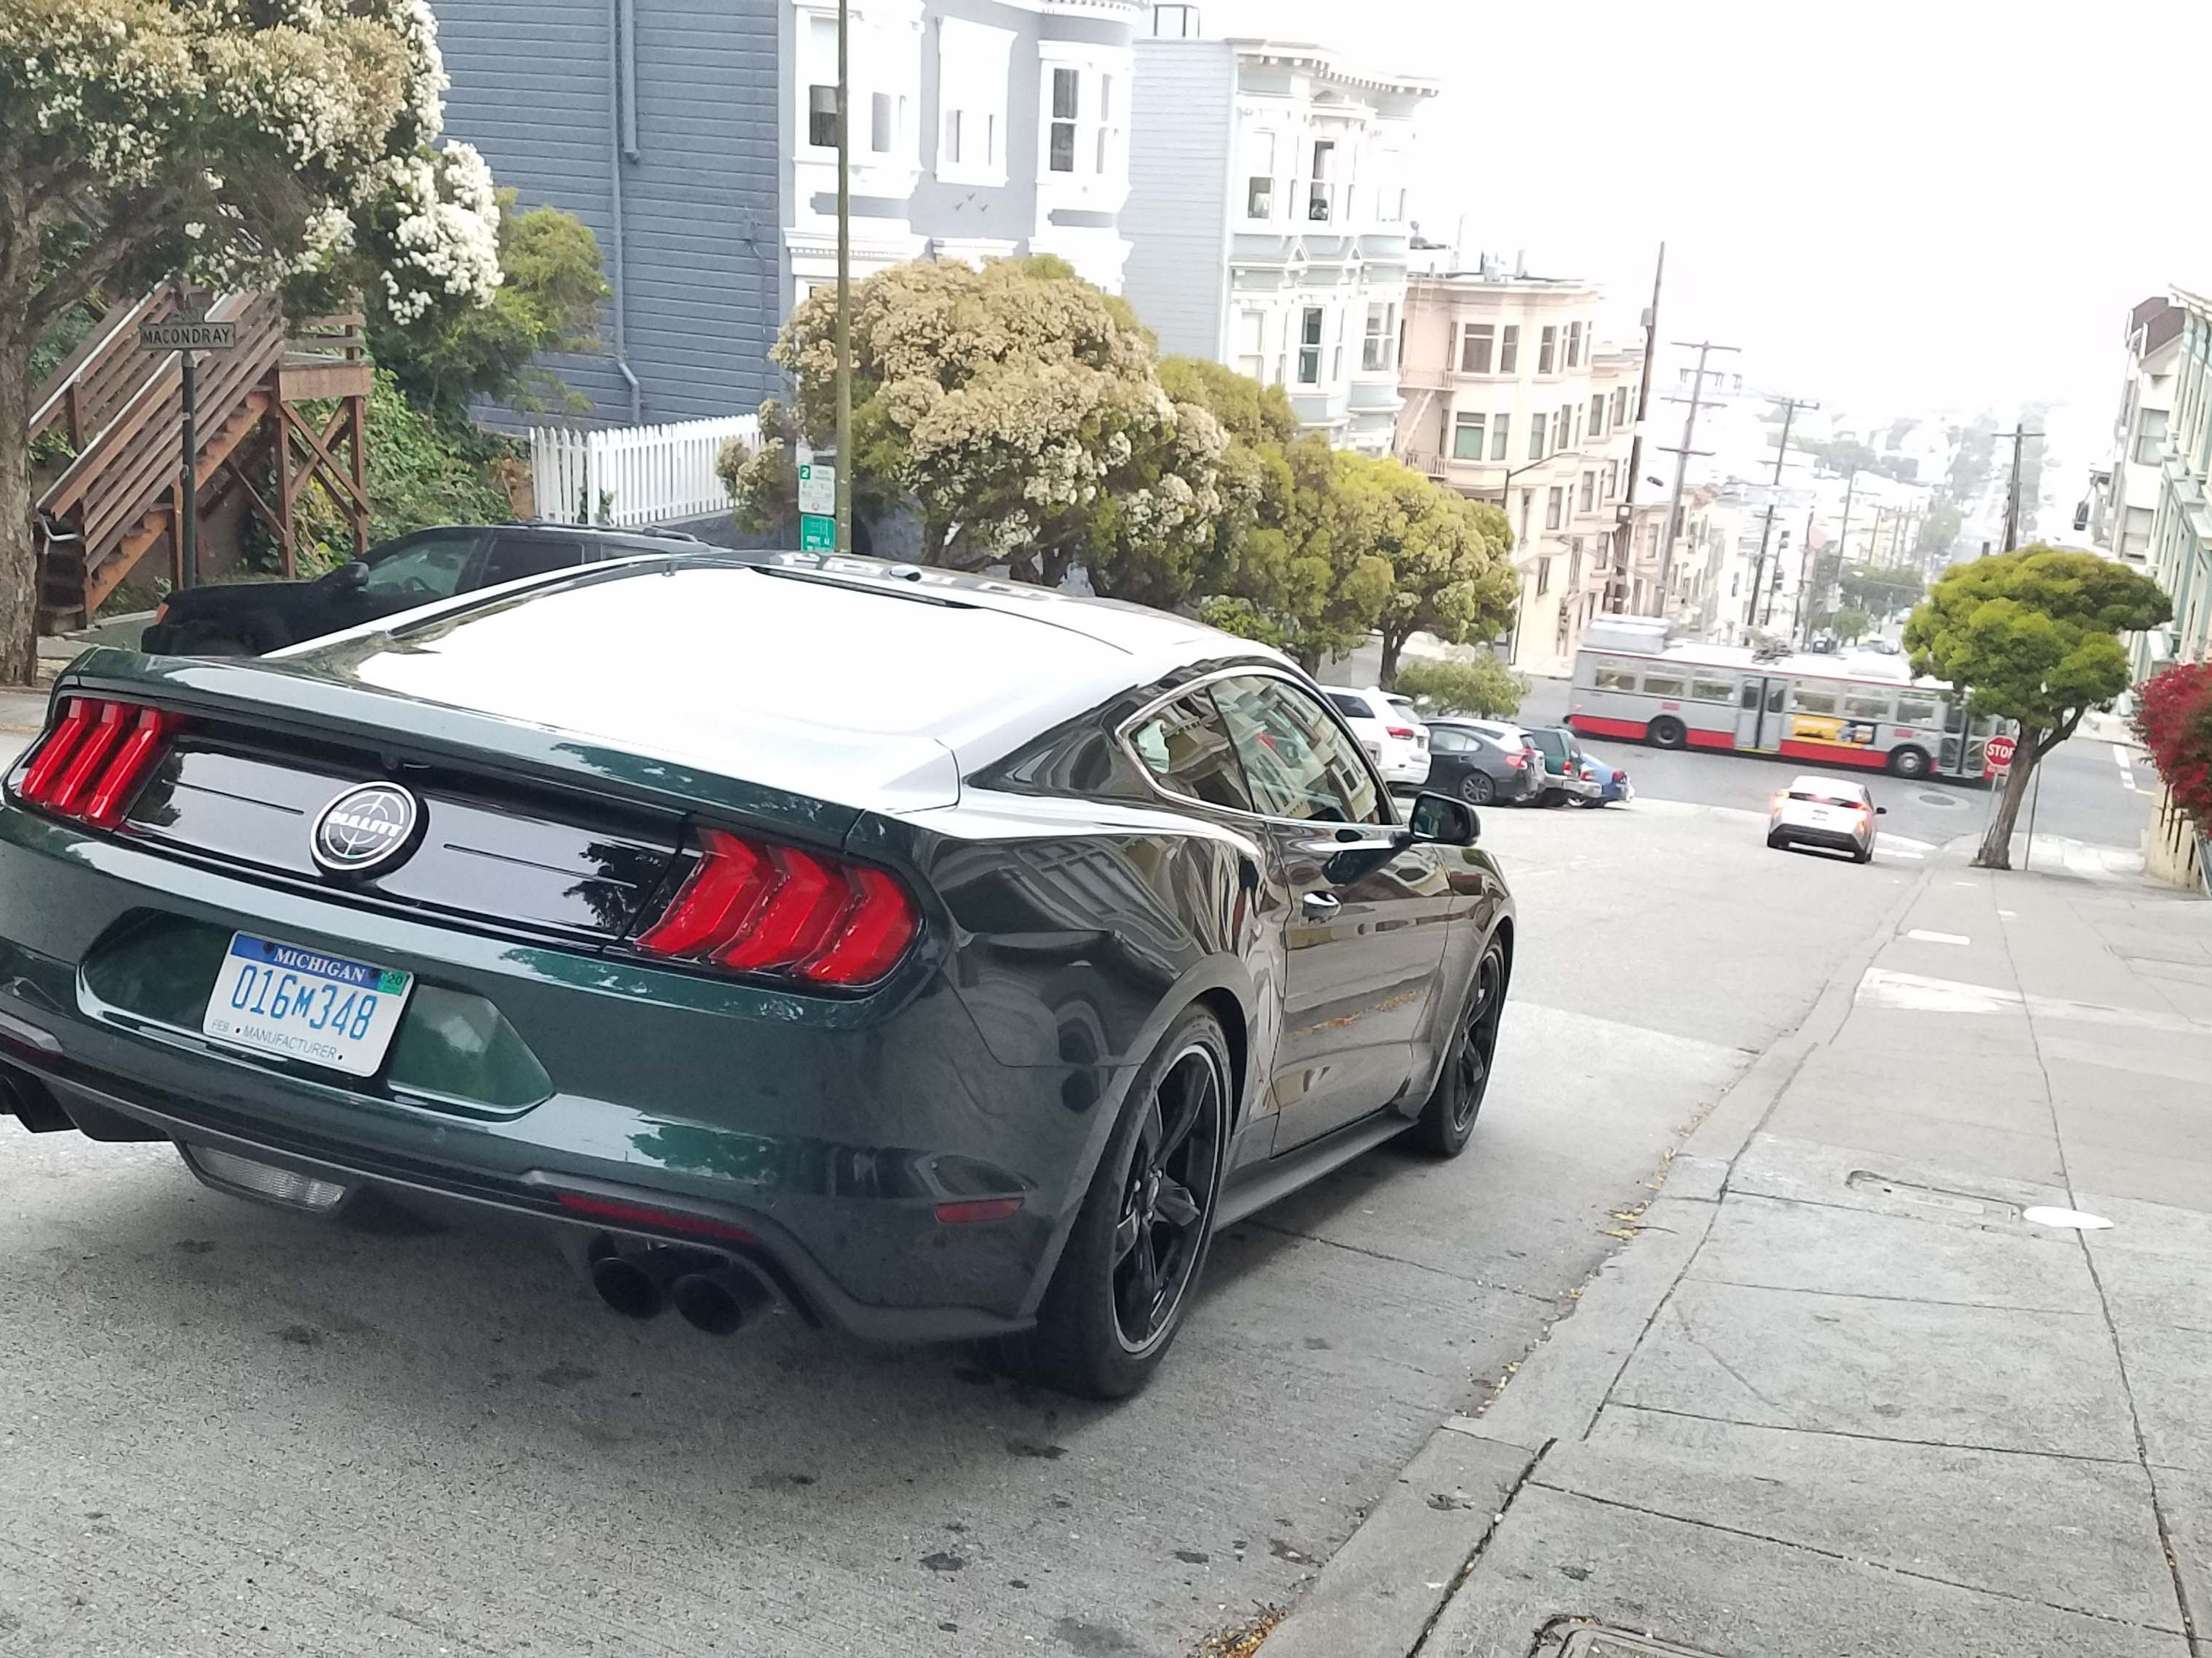 """A 2019 Ford Mustang Bullitt stares down Taylor Street on Russian Hill overlooking San Francisco Bay. The street was featured in the """"Bullitt"""" movie's famous car chase scene in which the Mustang chased a Dodge Charger at speeds over 100 mph."""